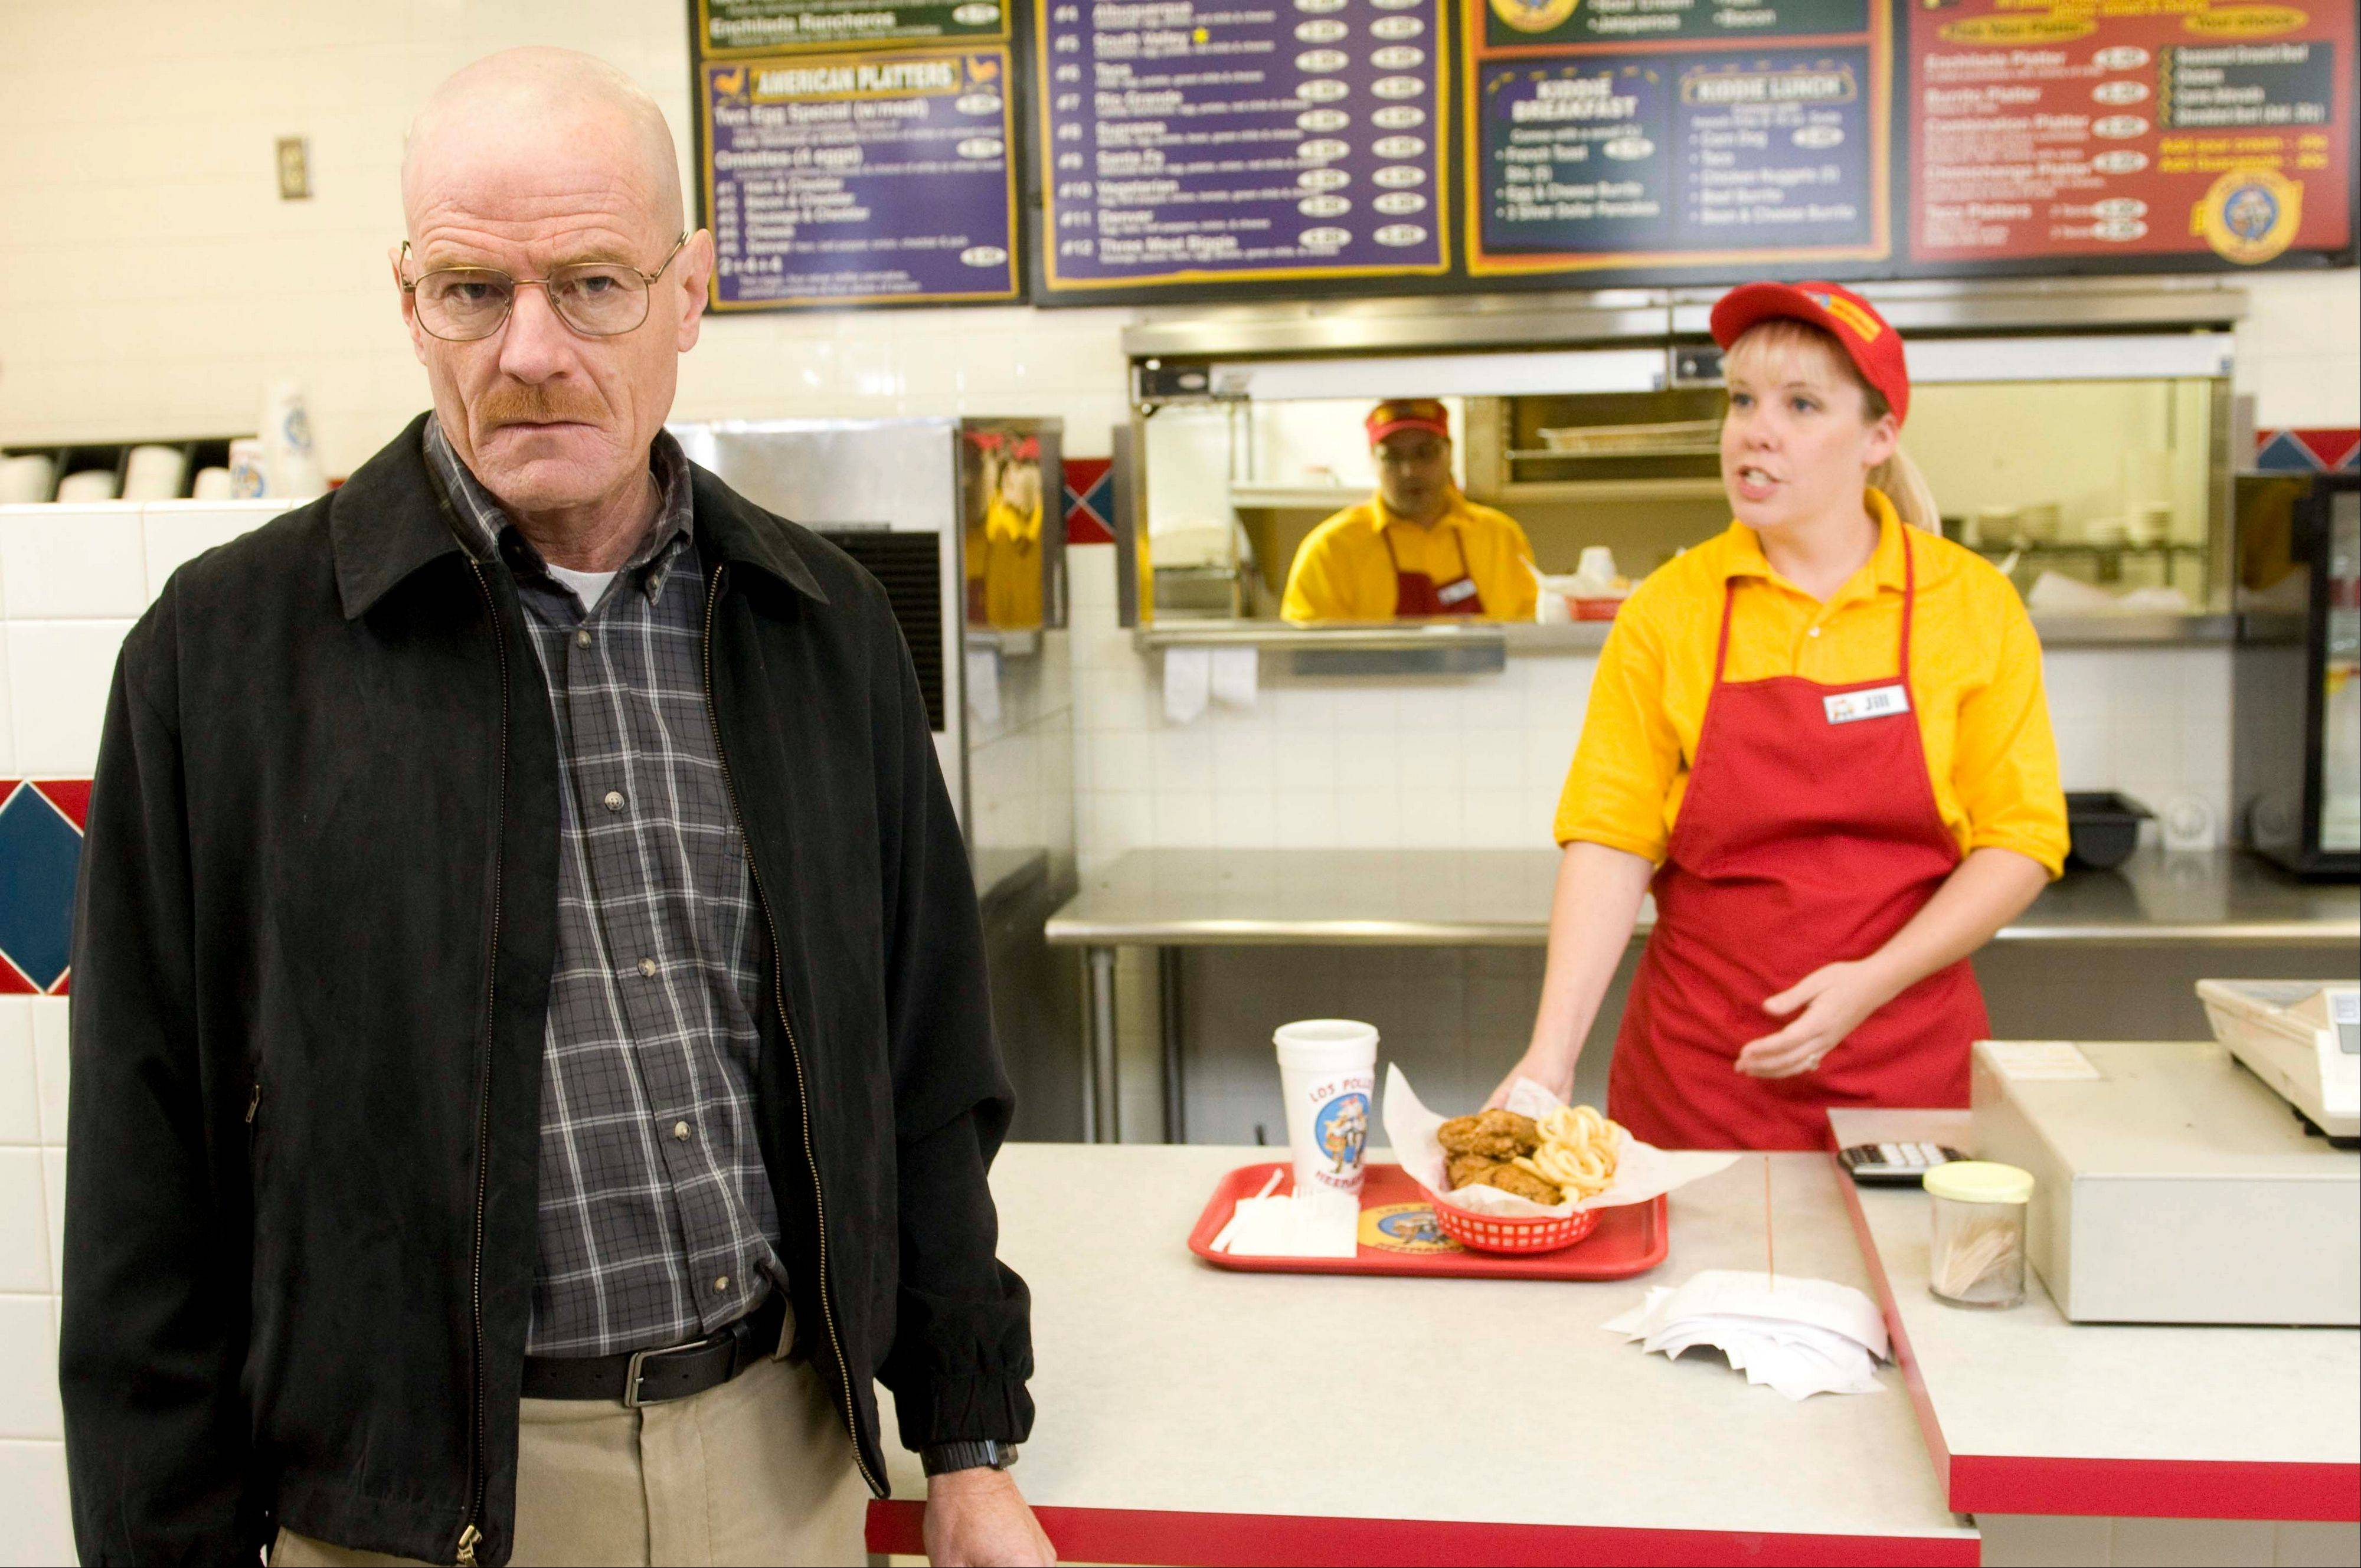 Bryan Cranston as Walter White in a scene from the popular AMC series �Breaking Bad.� A Twisters burrito restaurant in Albuquerque that serves as the location for the restaurant in the show has become an international tourist attraction as people come from all over the world to see the spot where a fictional drug trafficker runs his organization.